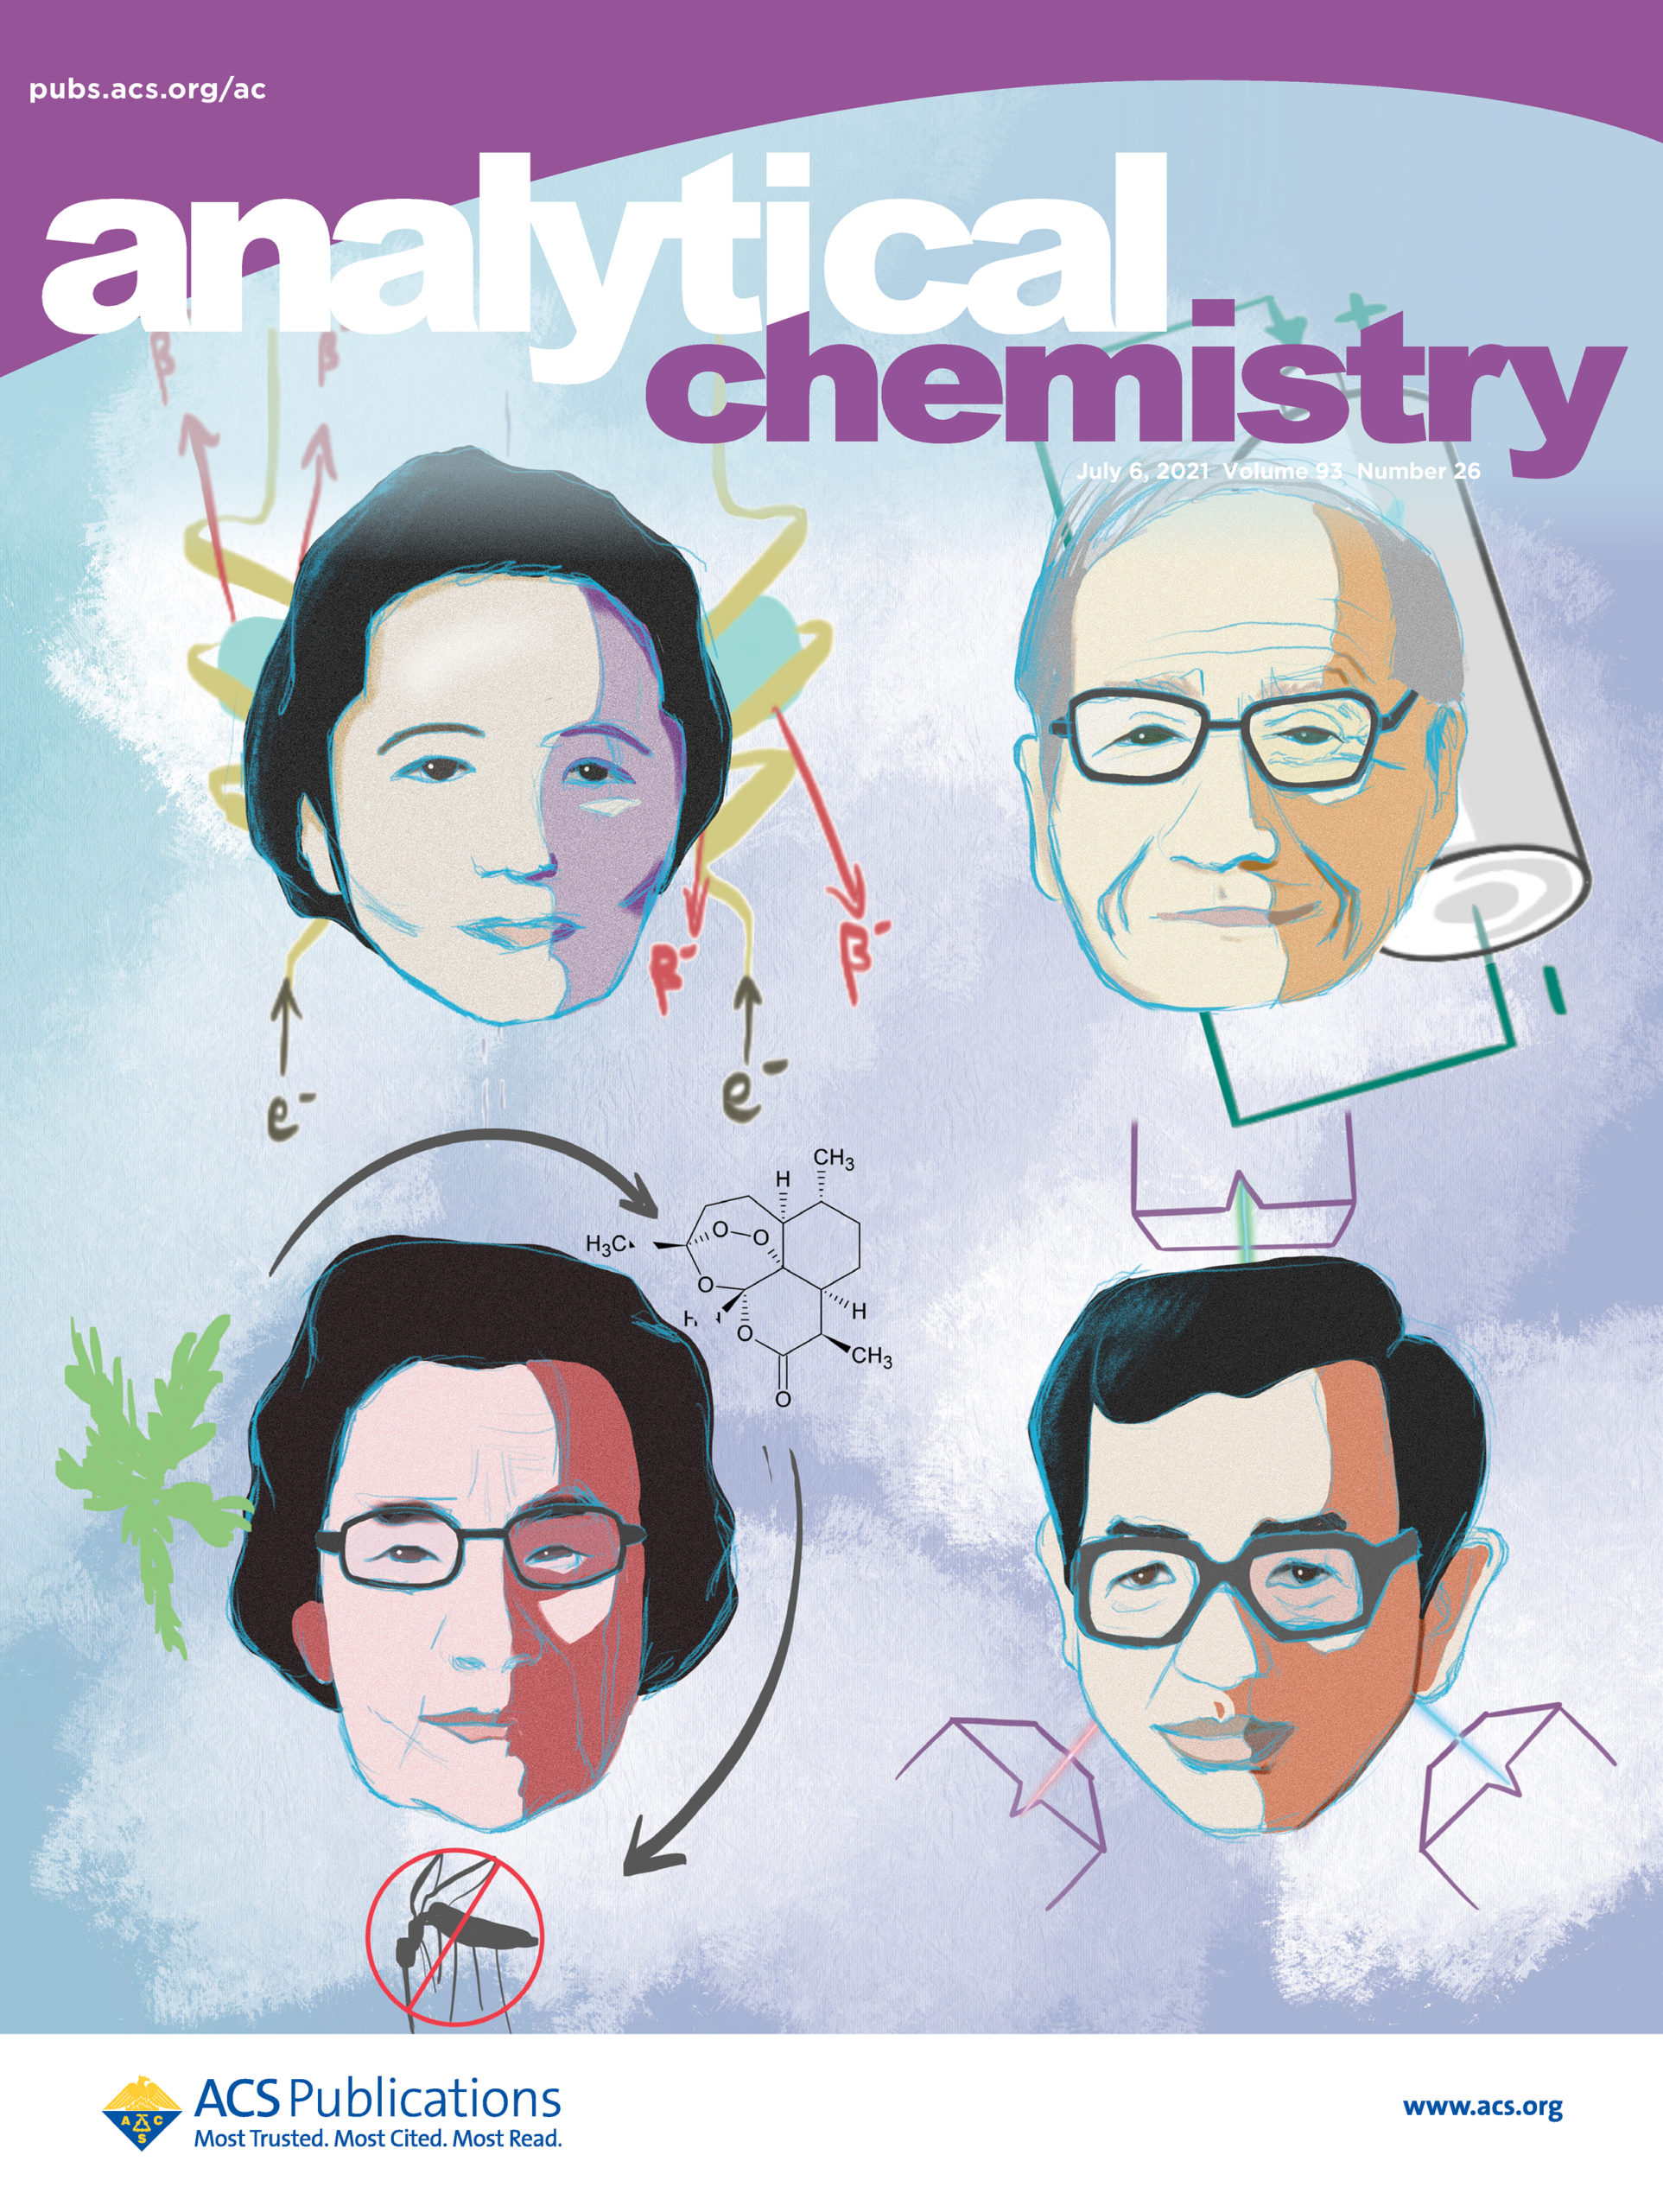 Artwork depicting four Asian scientists, four scientists illustrated on the cover, Dr. Chien-Shiung Wu, Dr. Akira Yoshino, Dr. Youyou Tu, and Dr. Yuan T. Lee, along with sketches of their areas of research, incorporated into a cover of the journal Analytical Chemistry